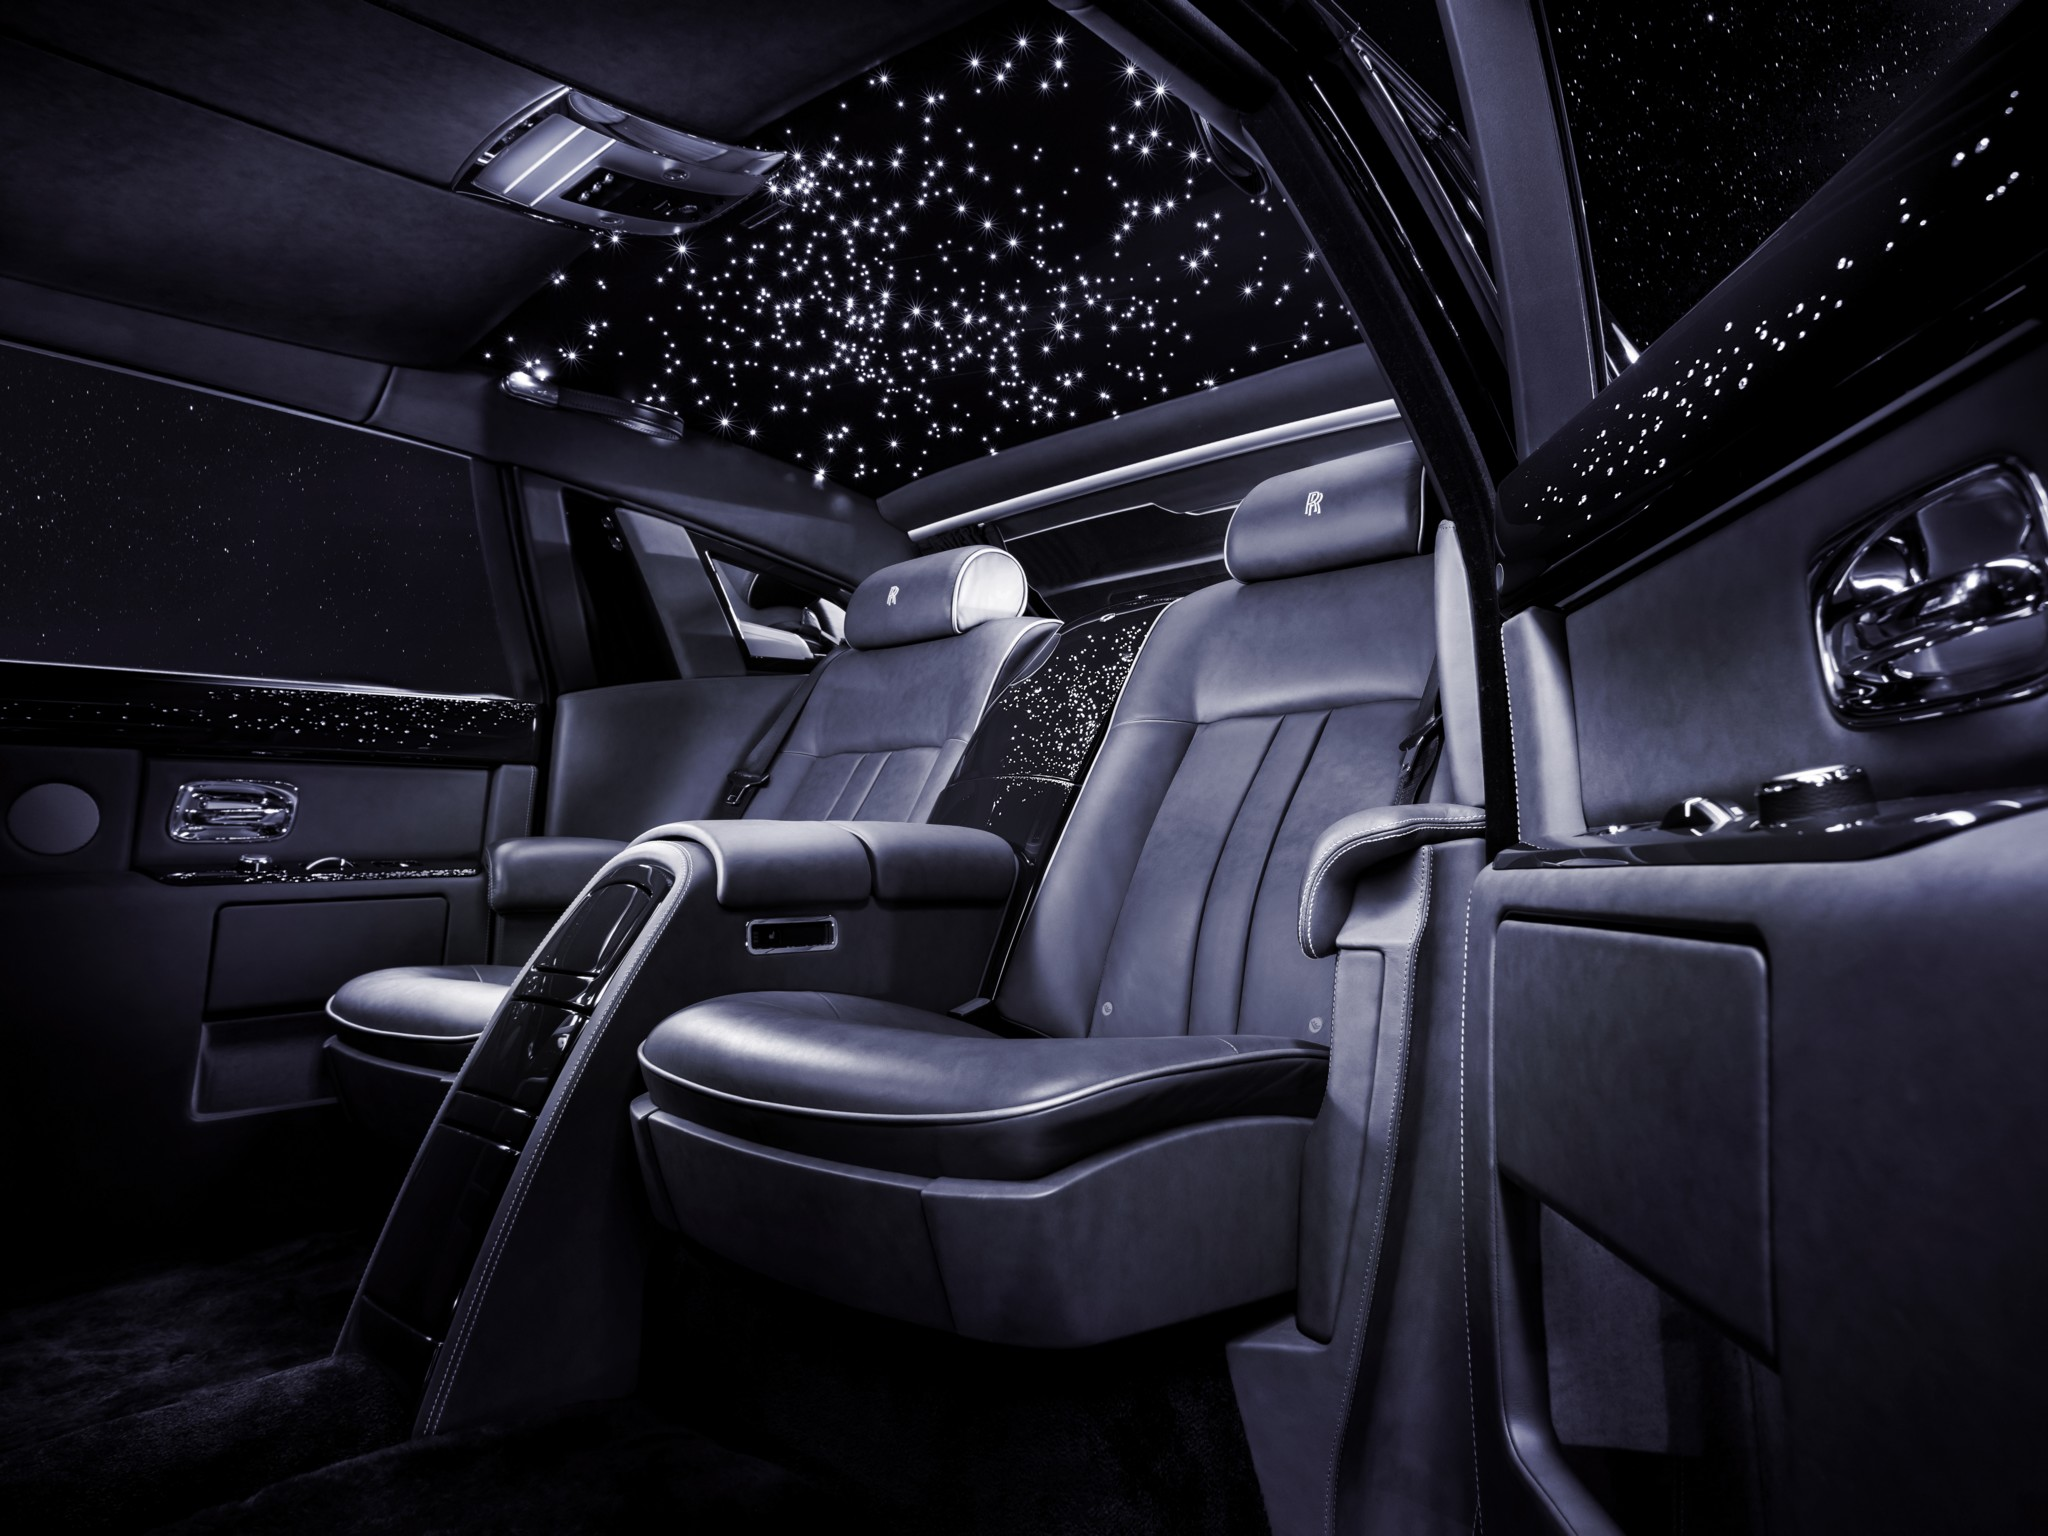 2013 rolls royce phantom celestial luxury interior g wallpaper 2048x1536 171040 wallpaperup. Black Bedroom Furniture Sets. Home Design Ideas